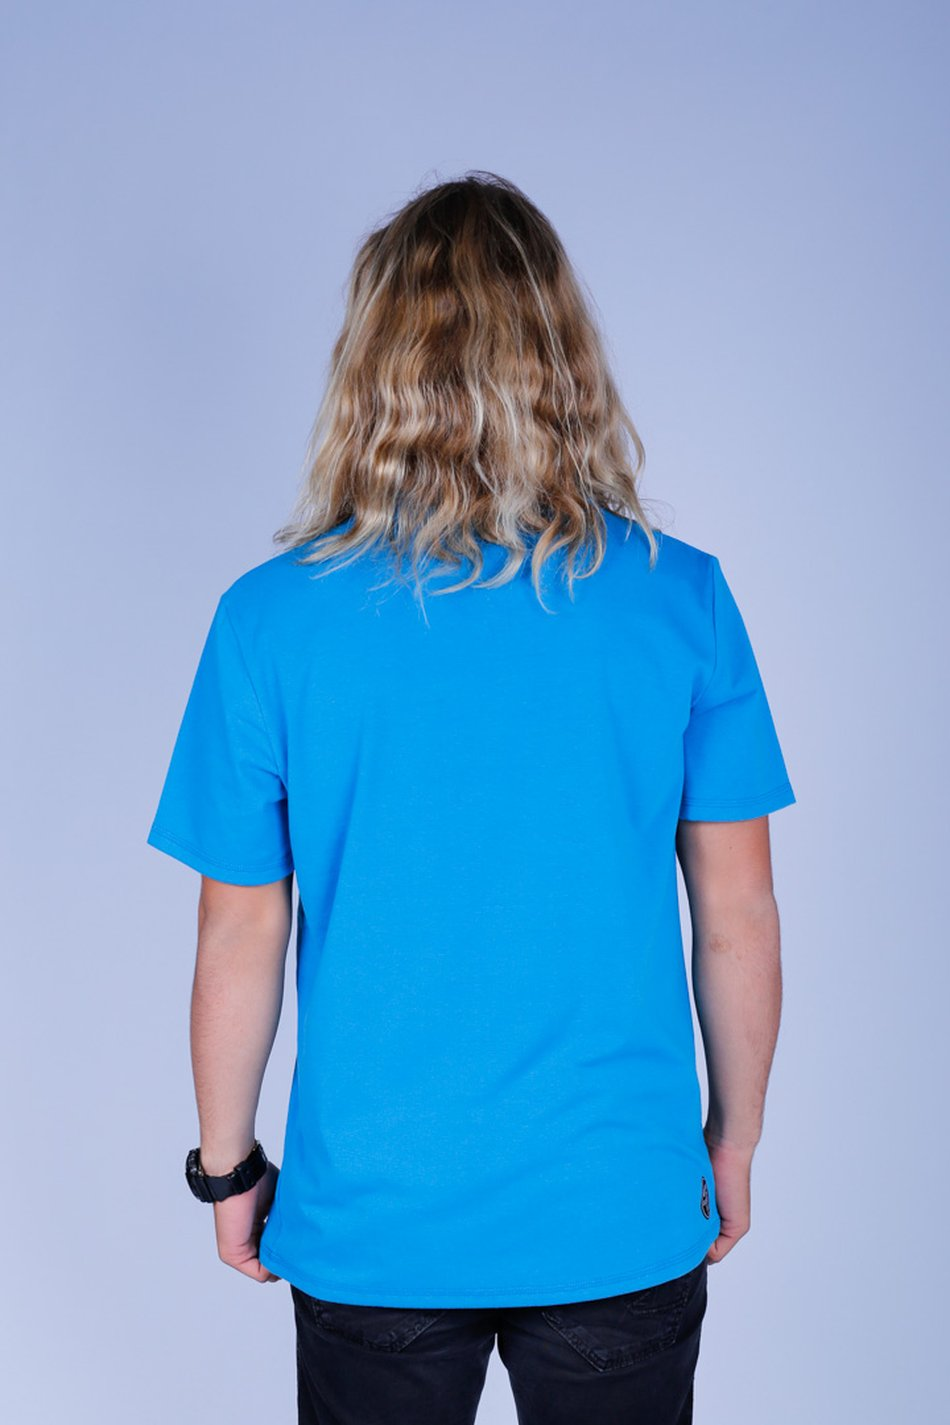 CAMISETA OCEANO PRESERVE KEEP RECICLE